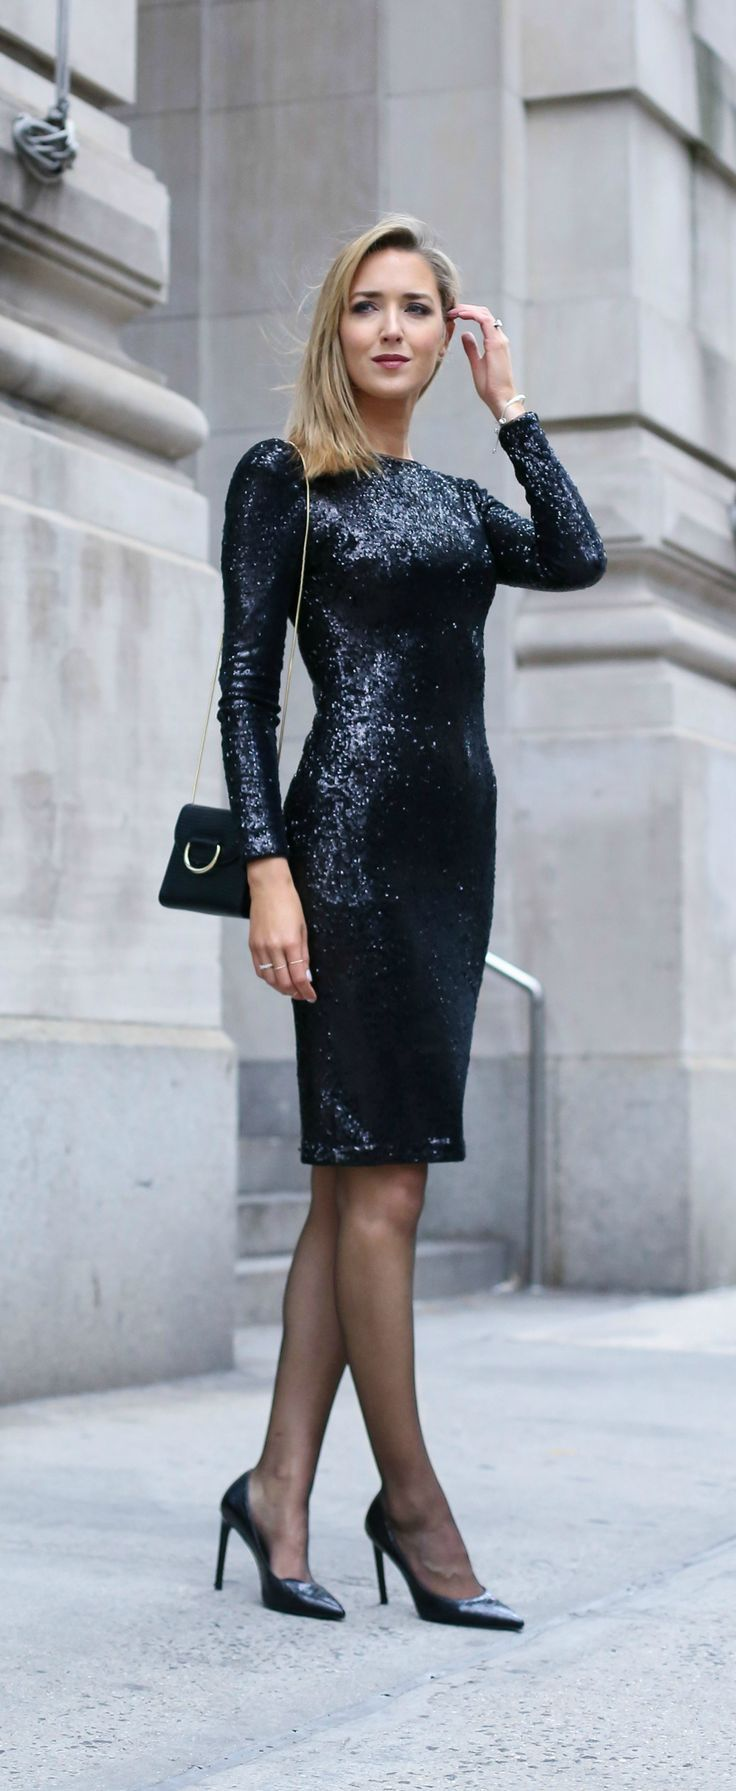 Long sleeve black sequin cocktail dress perfect for a dressy night